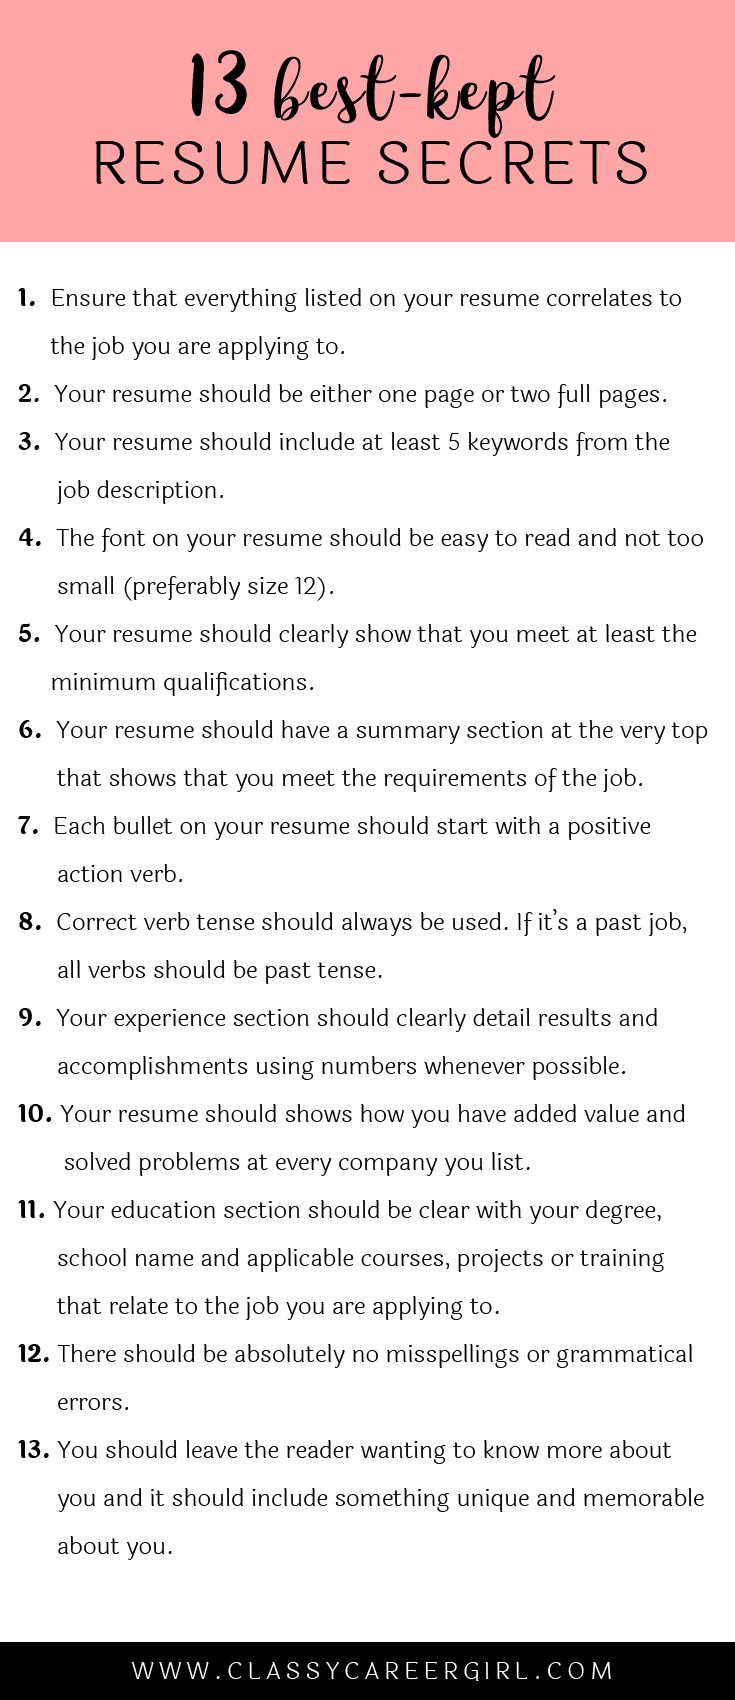 Opposenewapstandardsus  Inspiring  Ideas About Resume On Pinterest  Cv Format Resume Cv And  With Interesting Some Hiring Managers Will Toss Your Resume Out If You Dont Know These  With Enchanting Personal Trainer Resume Examples Also Help With Writing A Resume In Addition Personal Banker Resume Sample And Write Resume Online As Well As How To Make A Reference Page For A Resume Additionally Free Resume Templete From Pinterestcom With Opposenewapstandardsus  Interesting  Ideas About Resume On Pinterest  Cv Format Resume Cv And  With Enchanting Some Hiring Managers Will Toss Your Resume Out If You Dont Know These  And Inspiring Personal Trainer Resume Examples Also Help With Writing A Resume In Addition Personal Banker Resume Sample From Pinterestcom